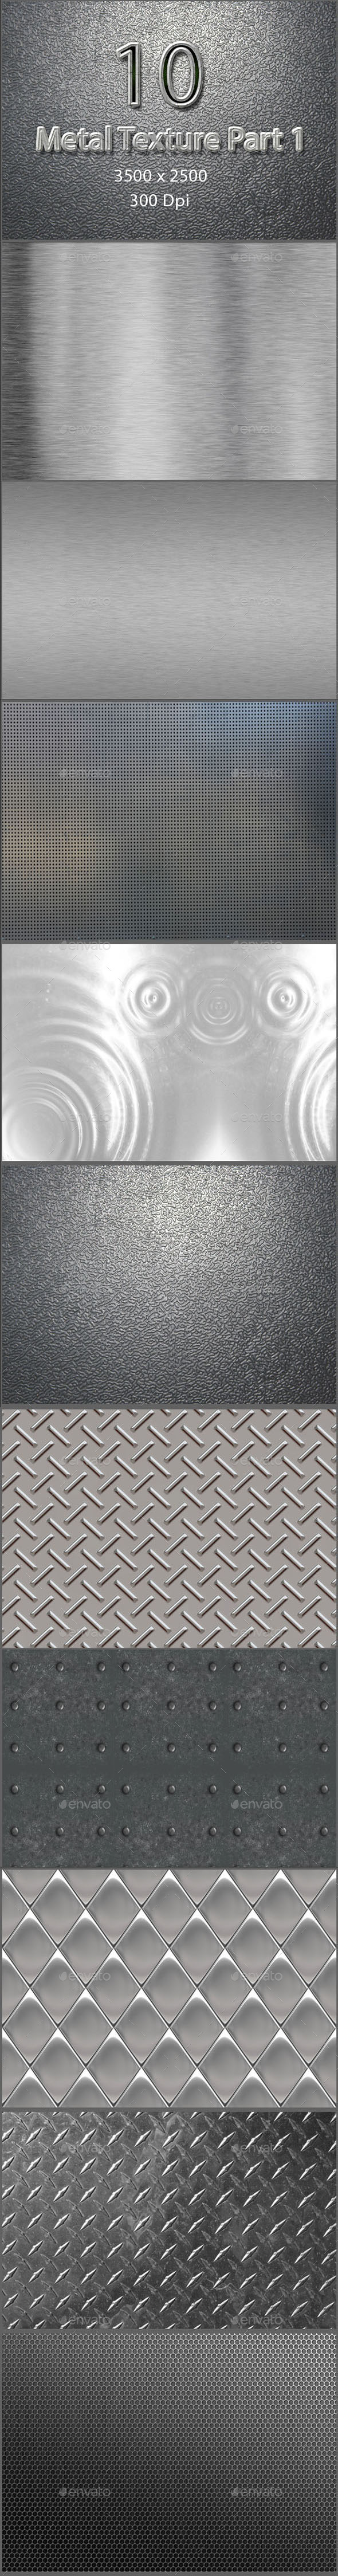 GraphicRiver 10 Metal Texture Part 1 9515535